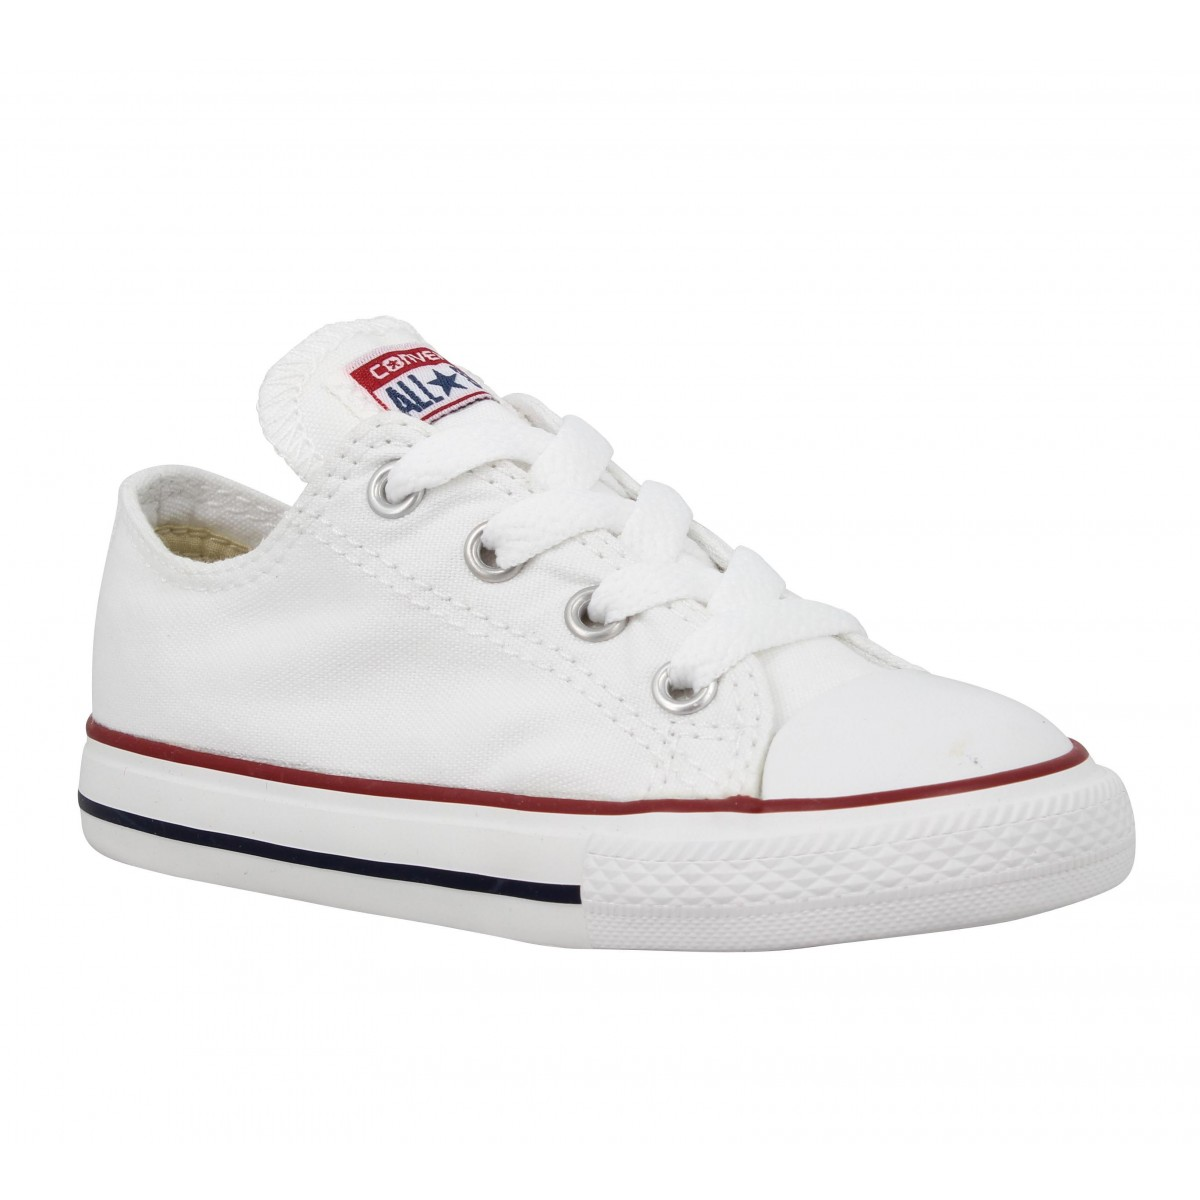 CONVERSE Chuck Taylor All Star toile Enfant-26-Blanc